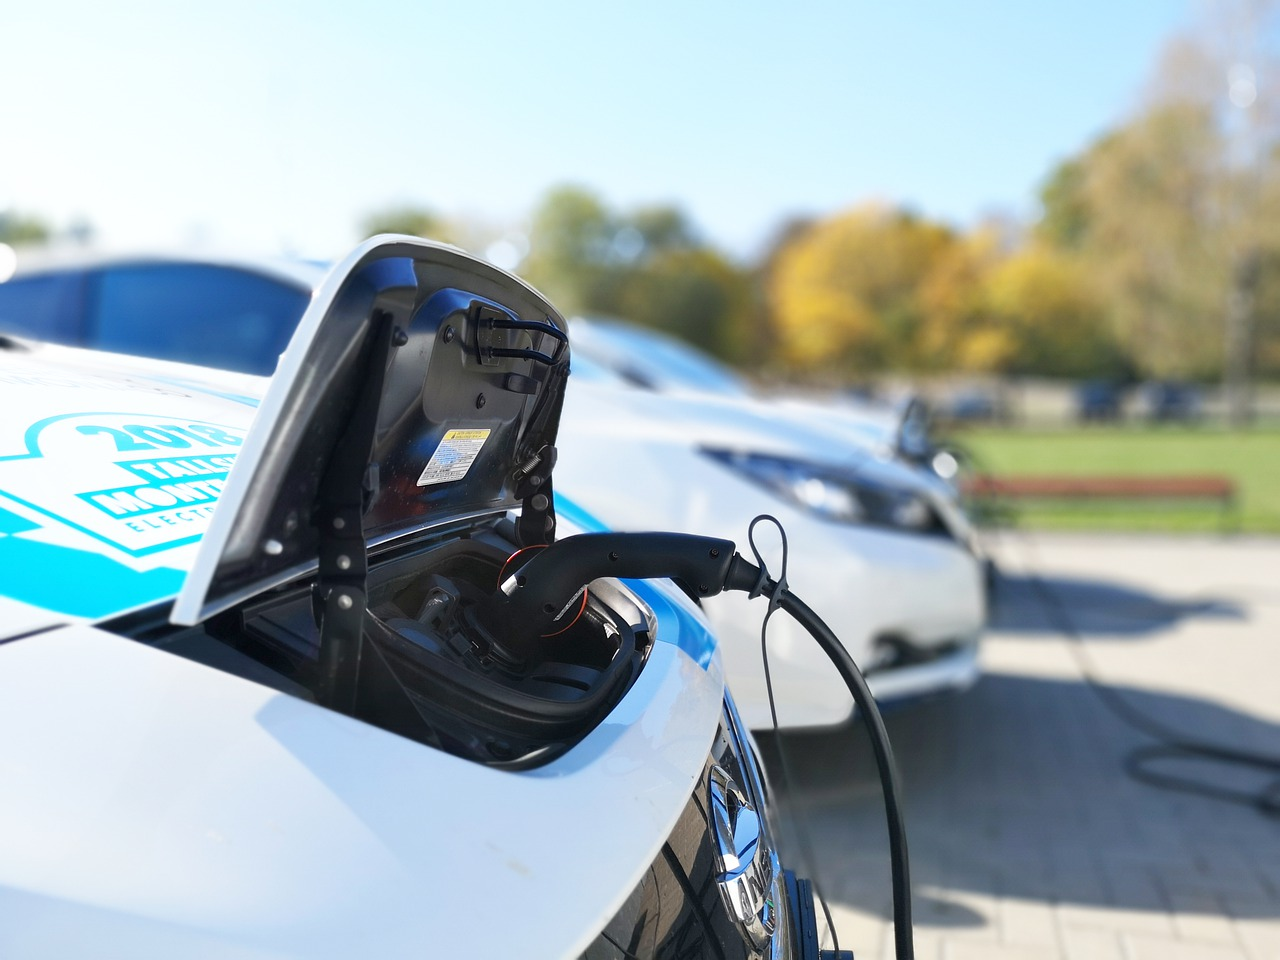 What Will Happen to Old EV Car Batteries that Are no Longer Fit for Service?